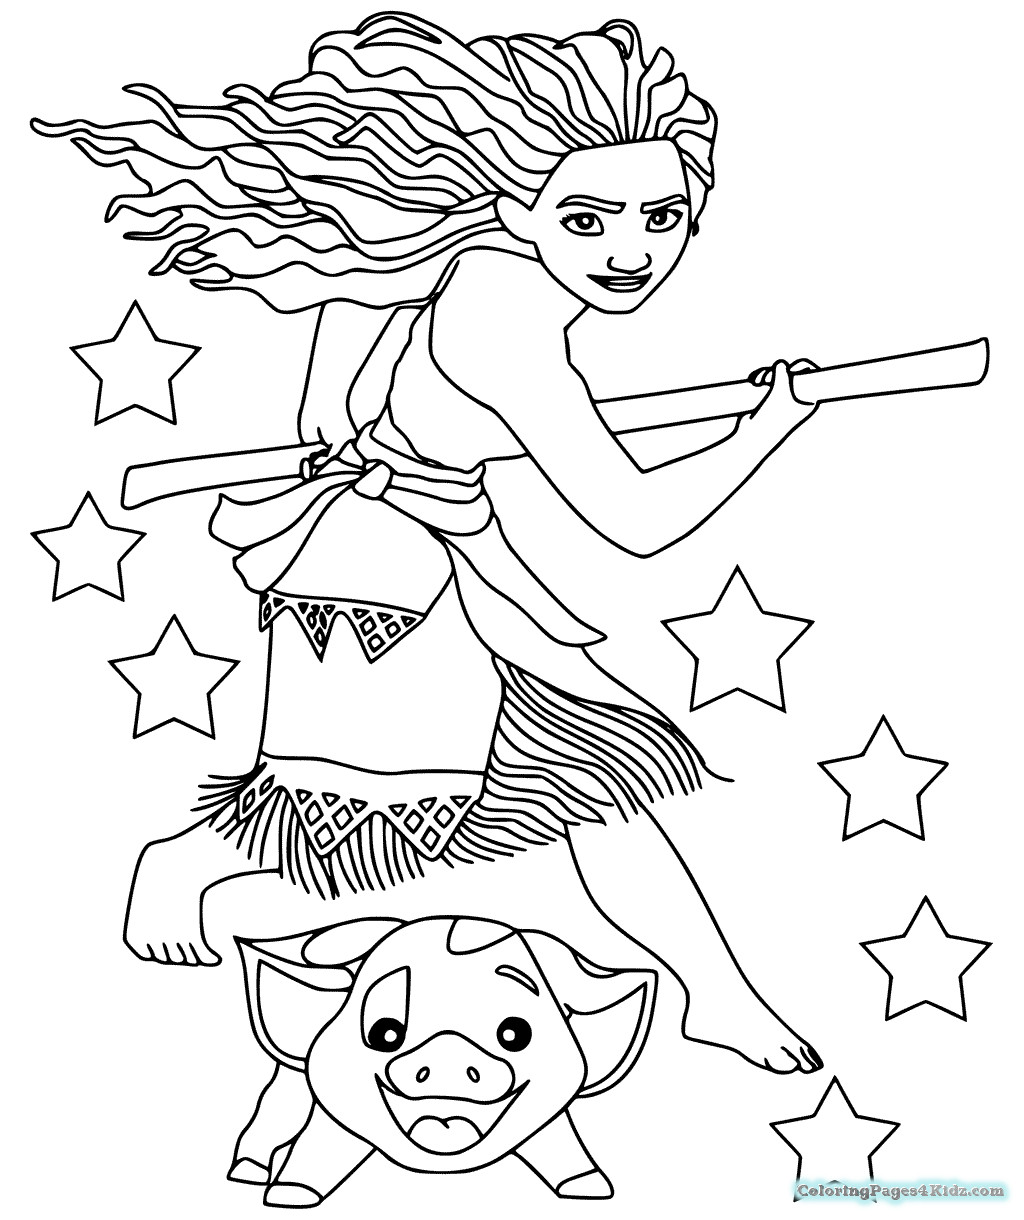 Best ideas about Moana Free Coloring Sheets . Save or Pin Moana Coloring Pages Now.